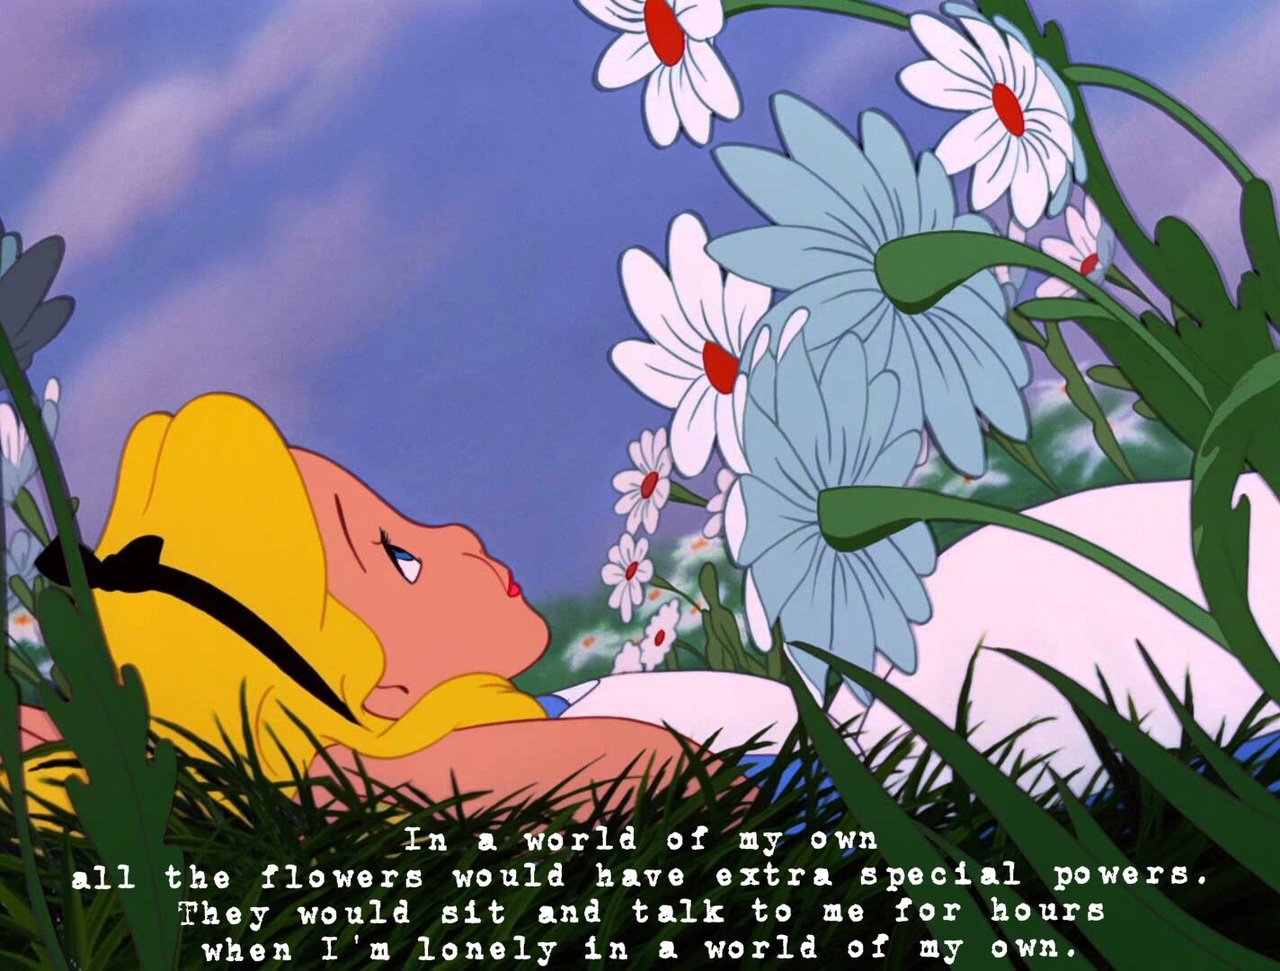 alice in wonderland, alice, and flowers image